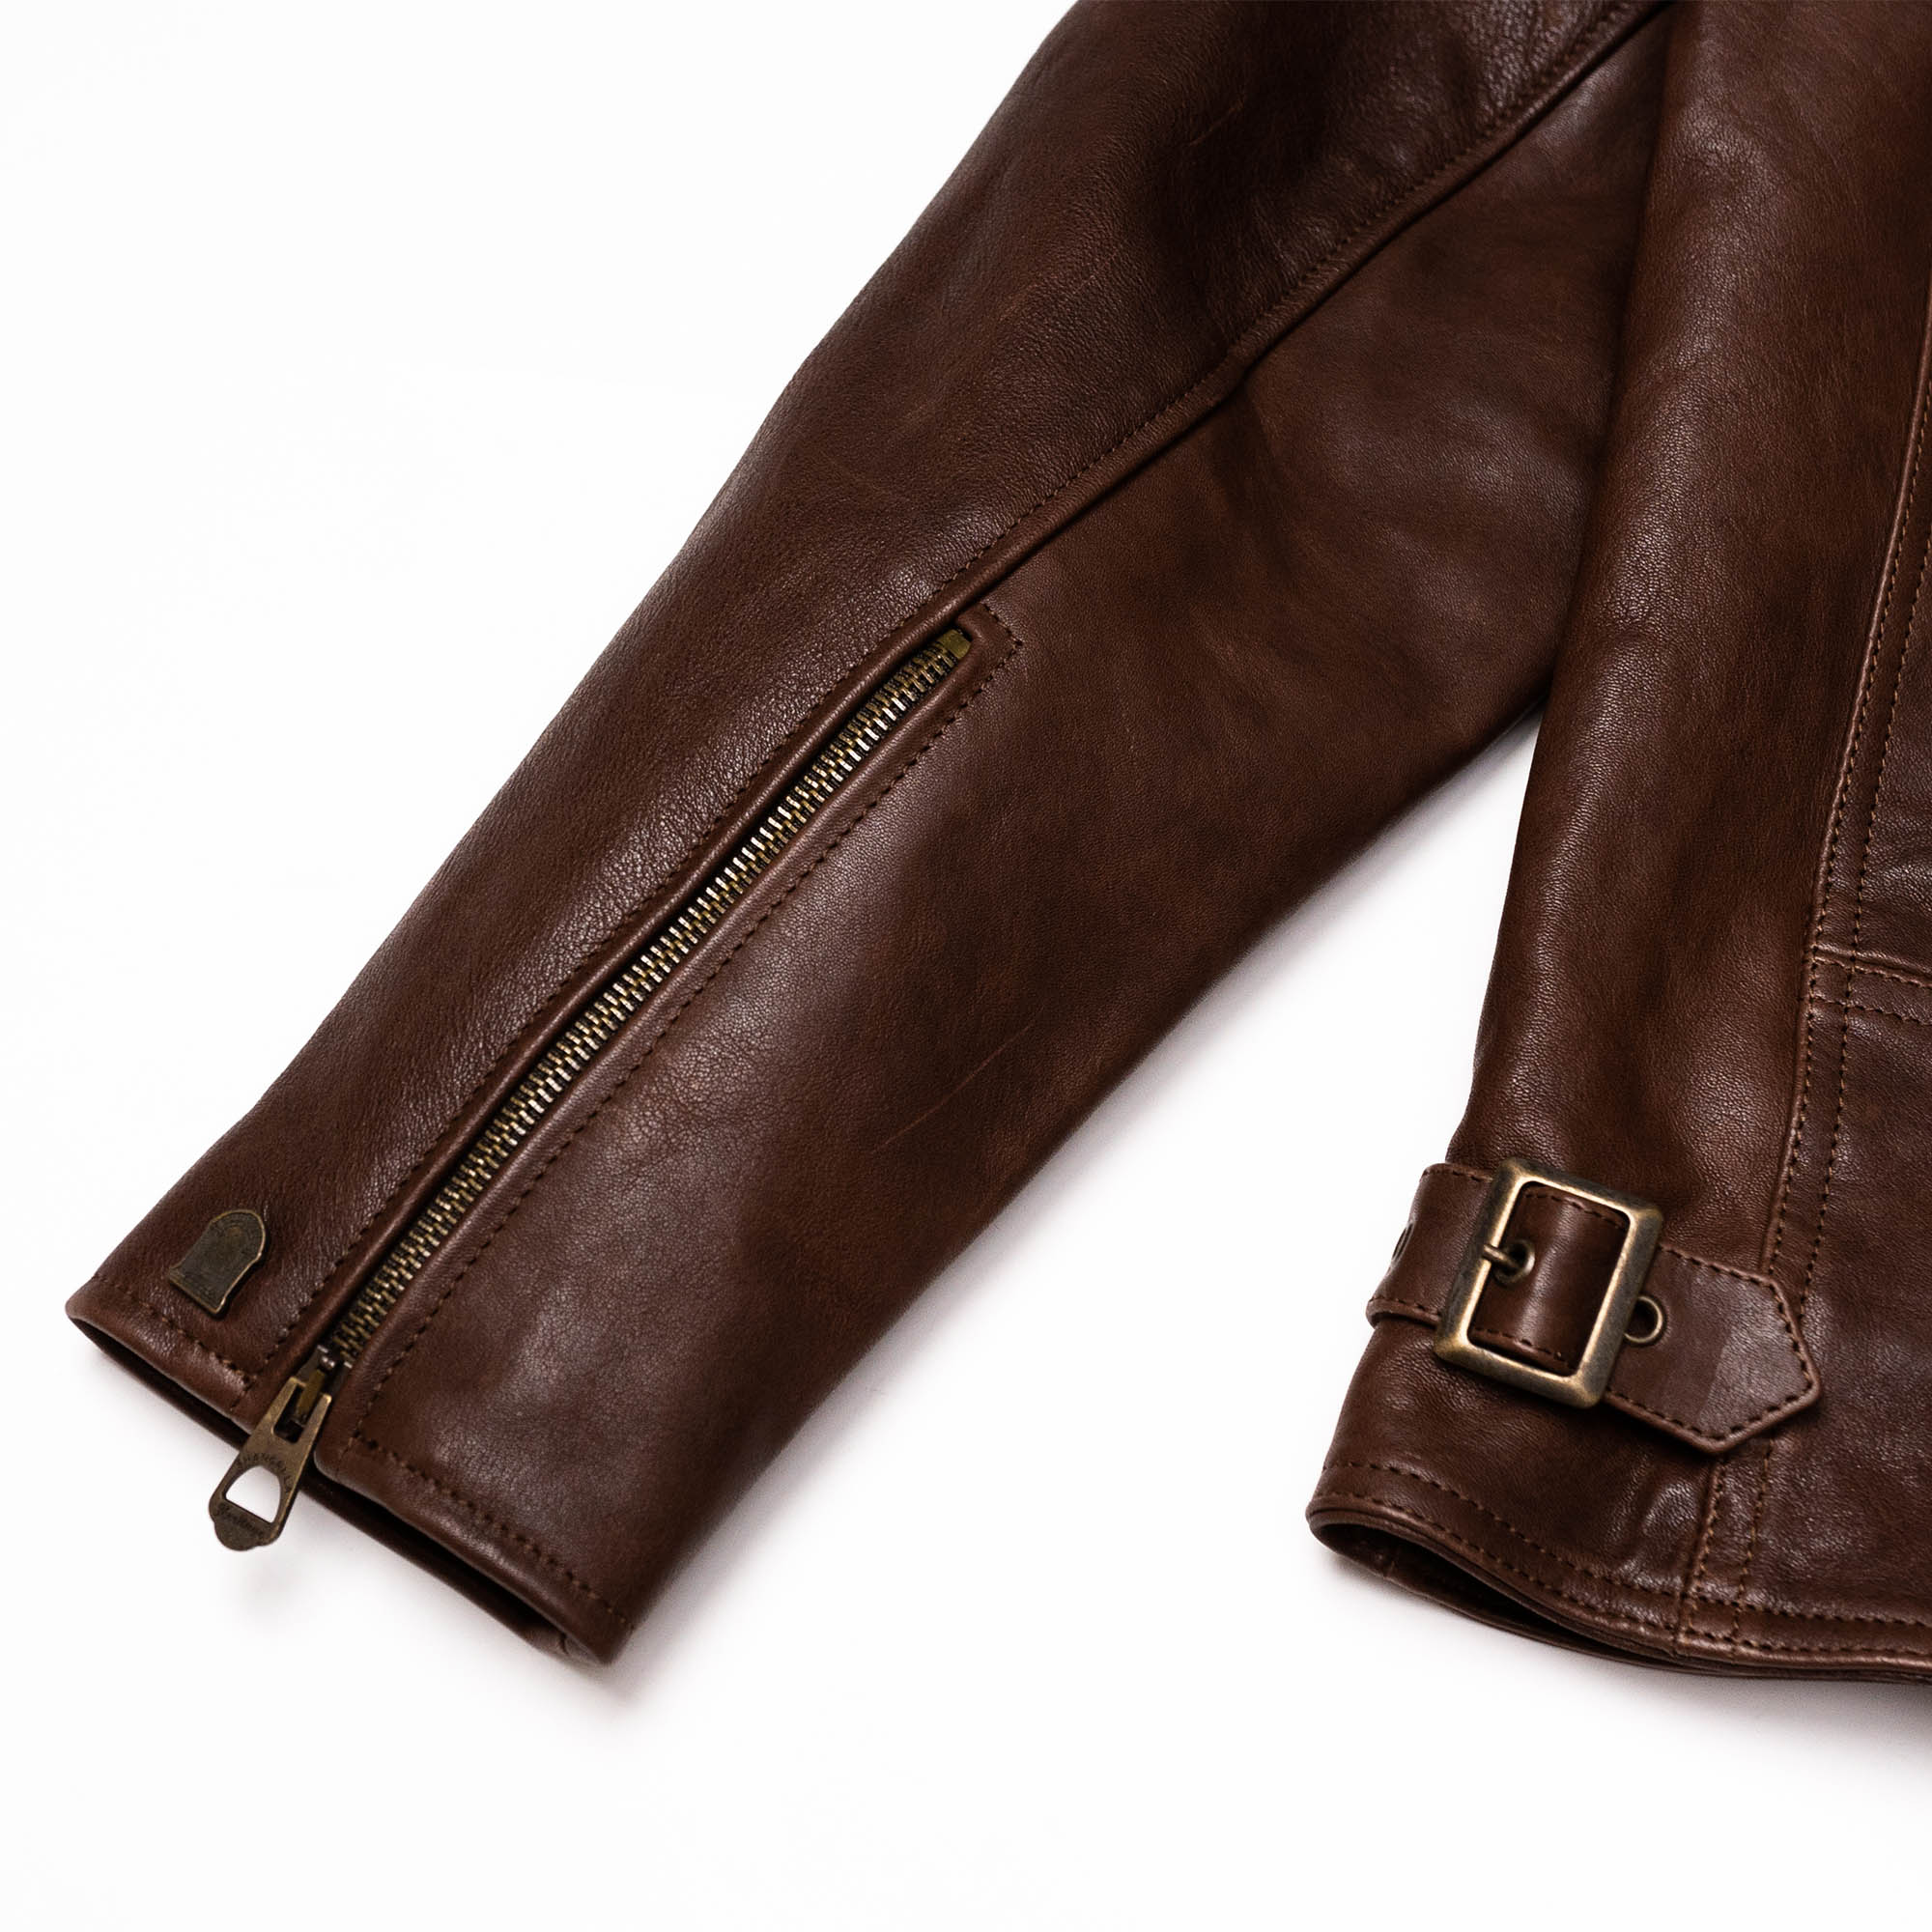 shangri-la-heritage-cafe-racer-brown-lambskin-jacket-still-life-new-sleeve